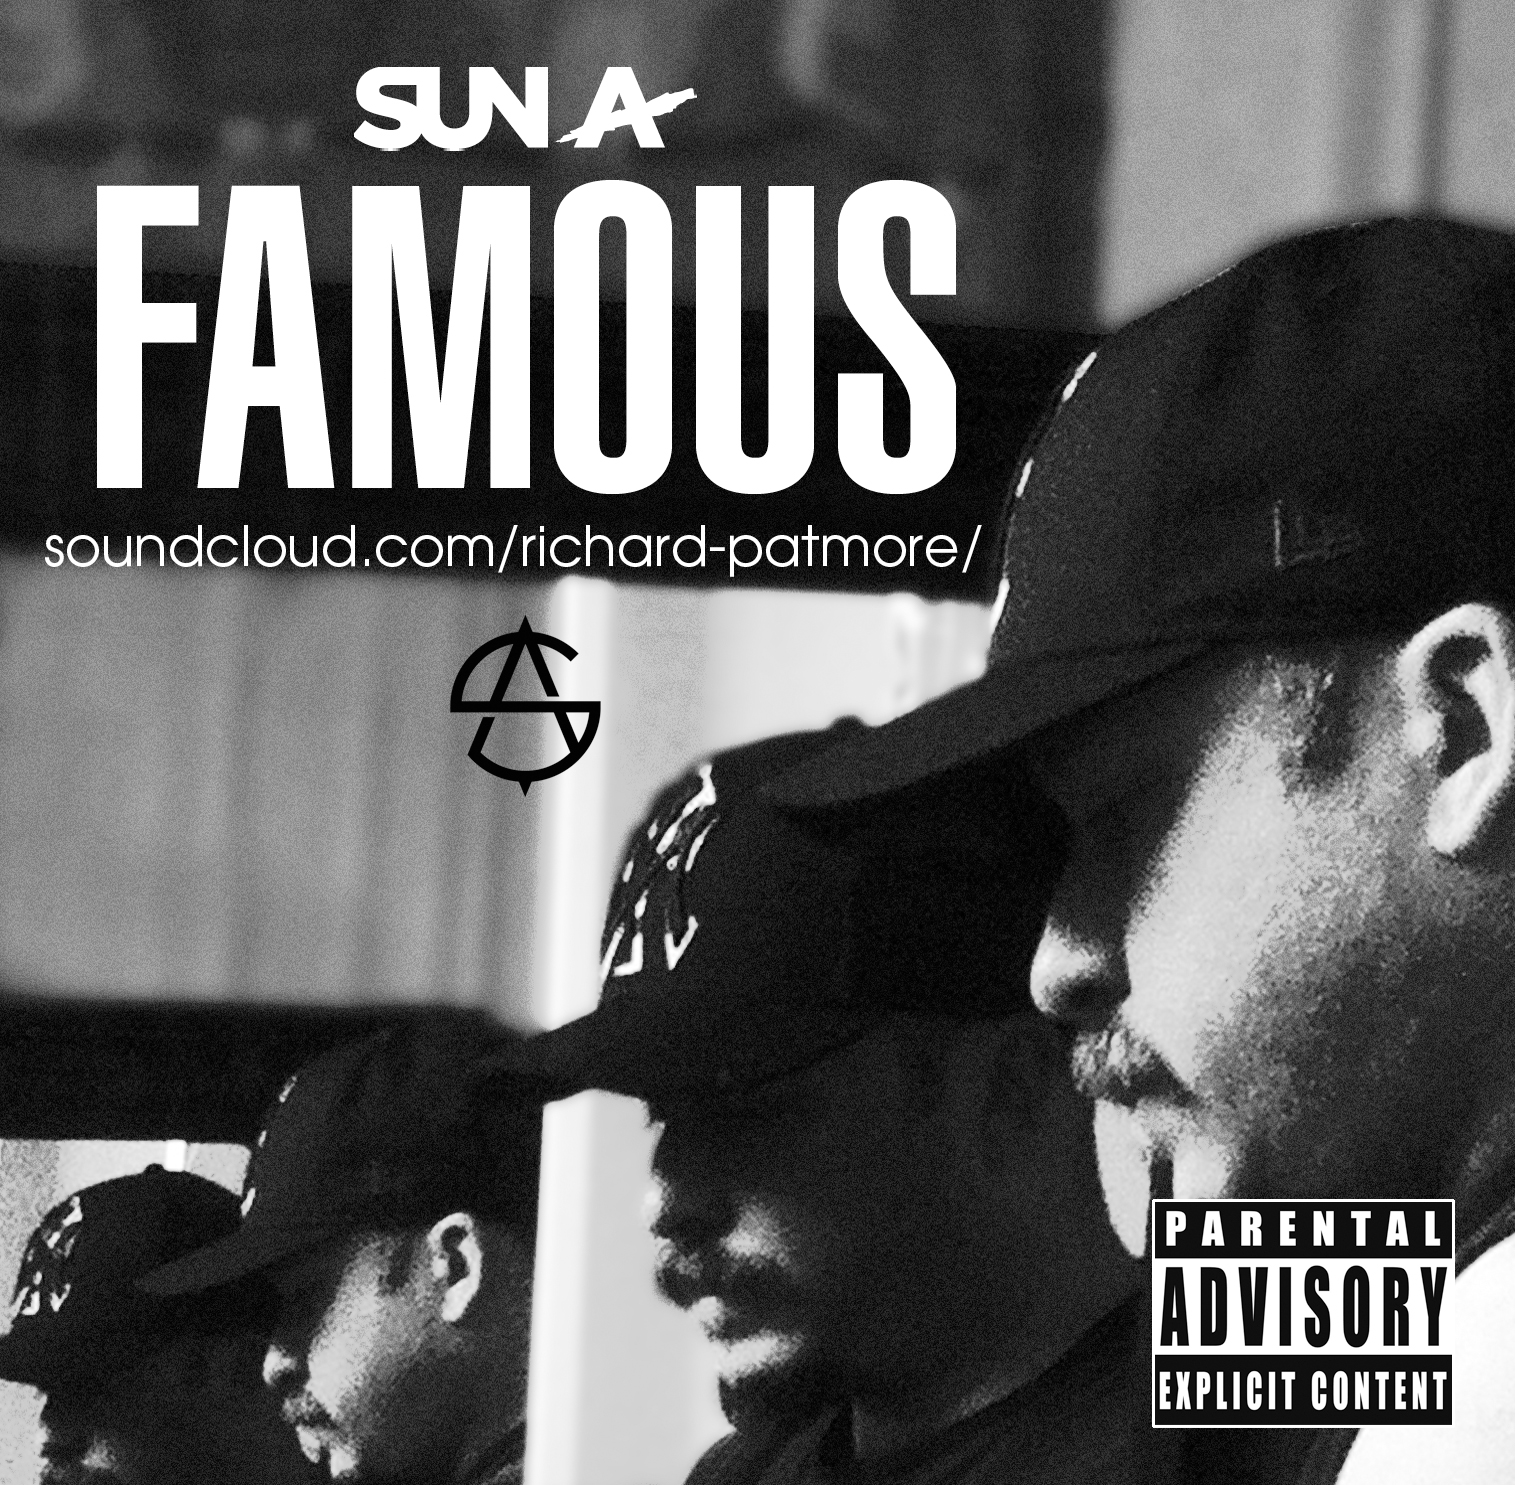 New song by my alter ego SUN A 'Famous'